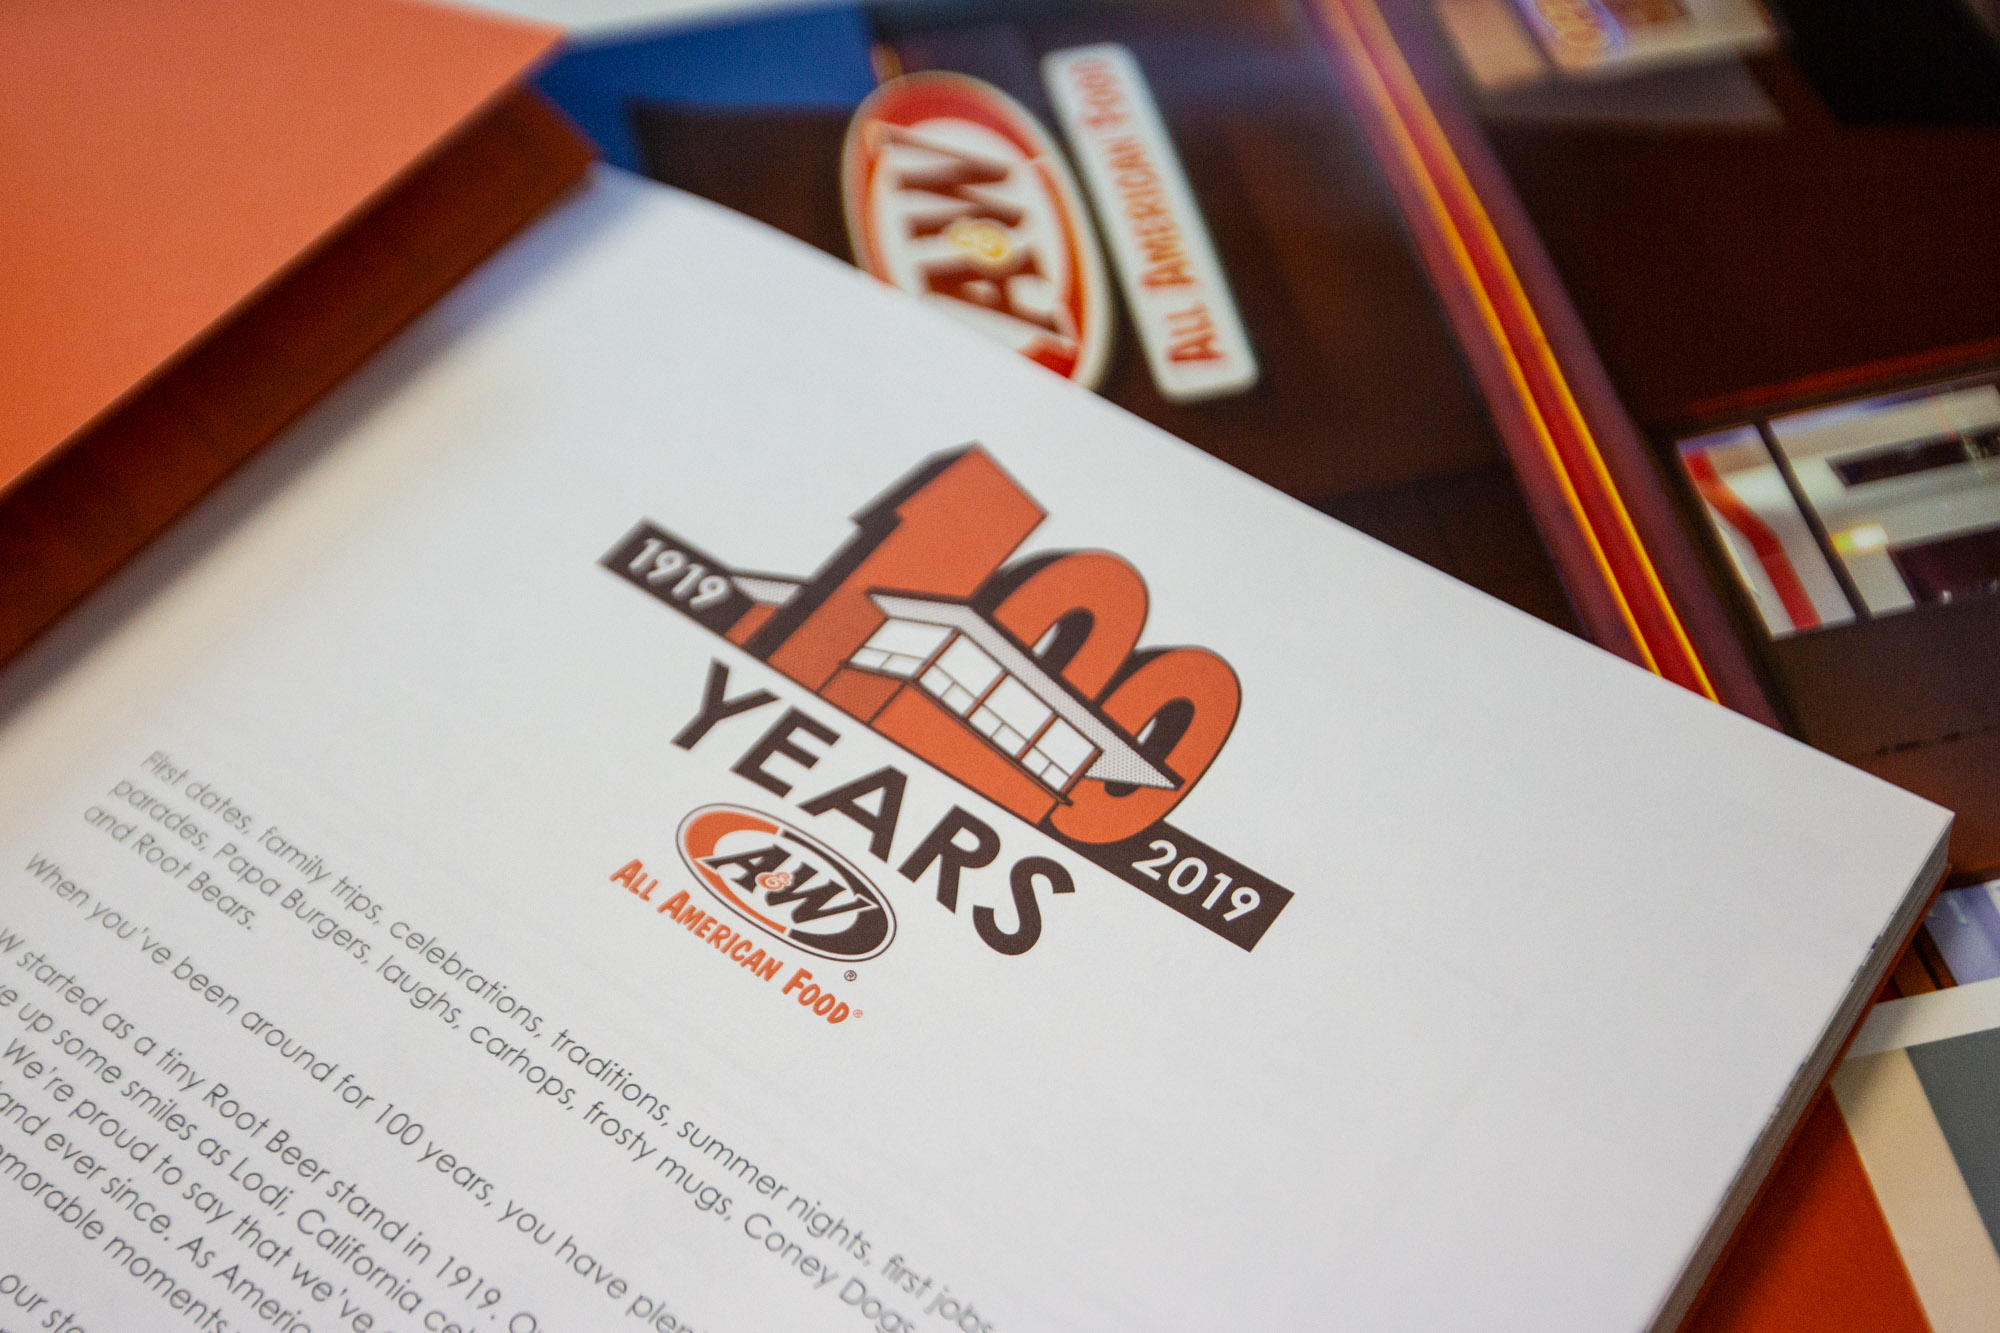 First page of A&W 100th Anniversary Book featuring 100th Anniversary Logo and text